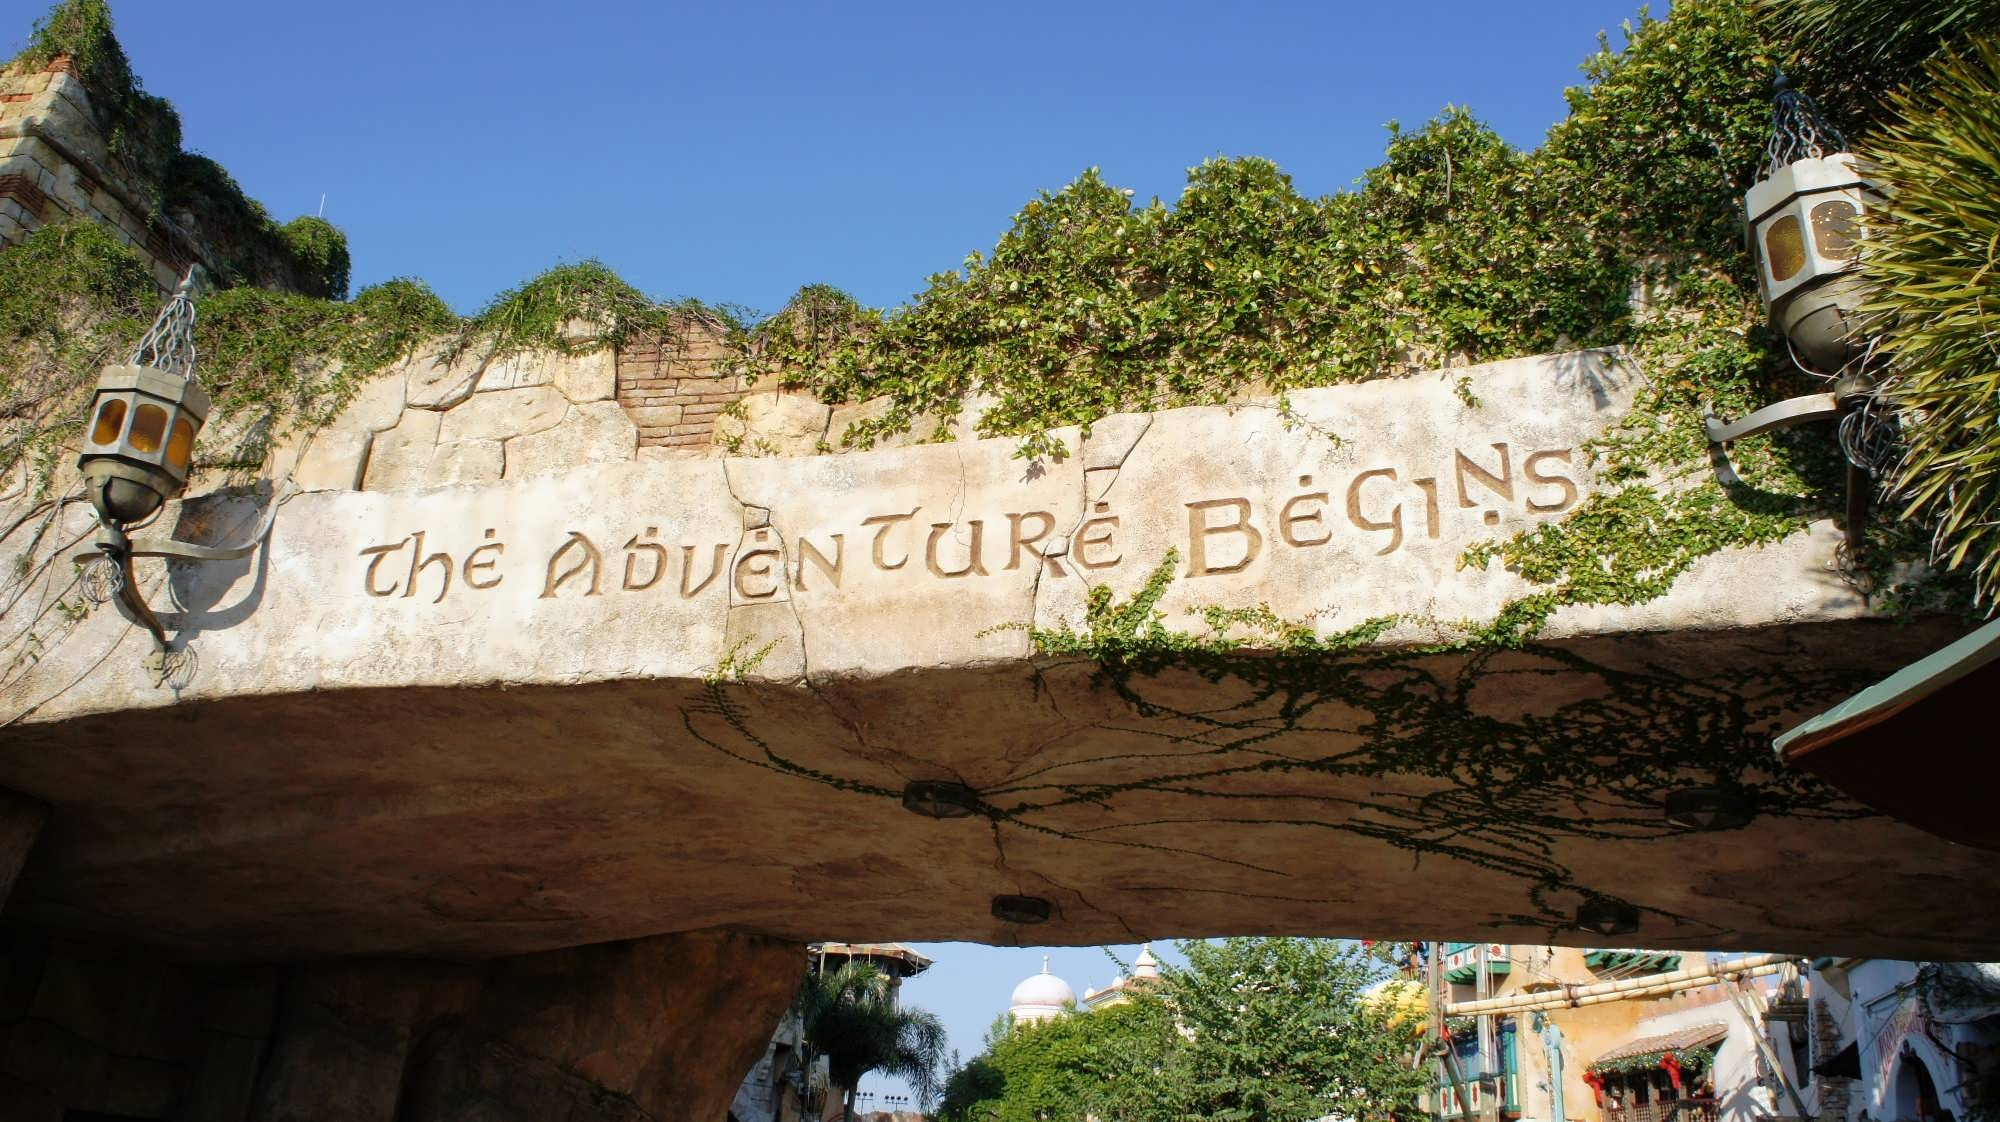 A stone archway welcomes guests to Islands of Adventure and reads